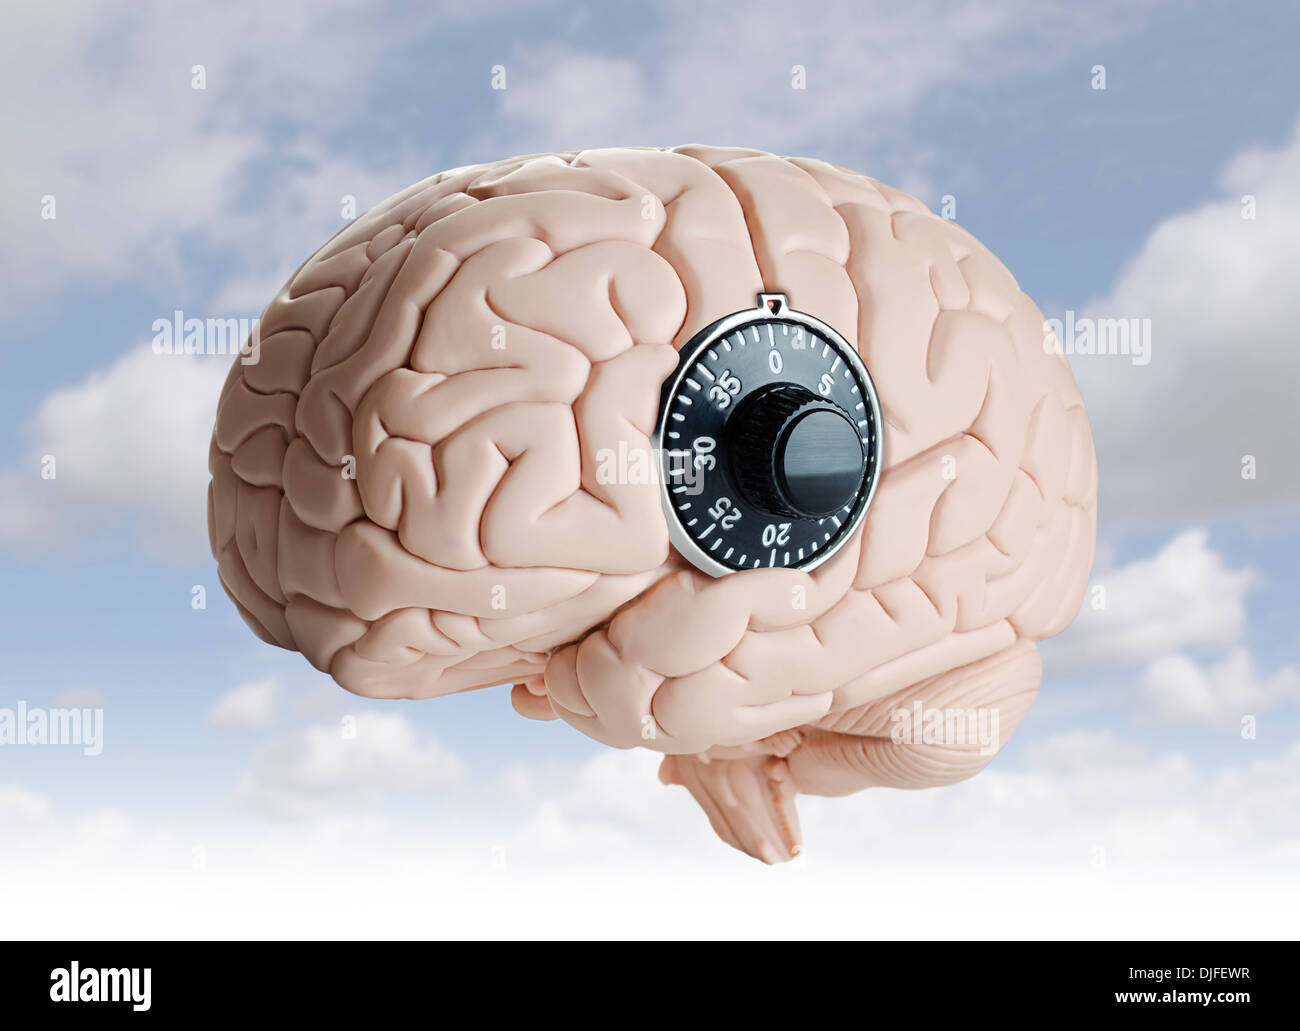 Human brain model with a dial lock - Stock Image